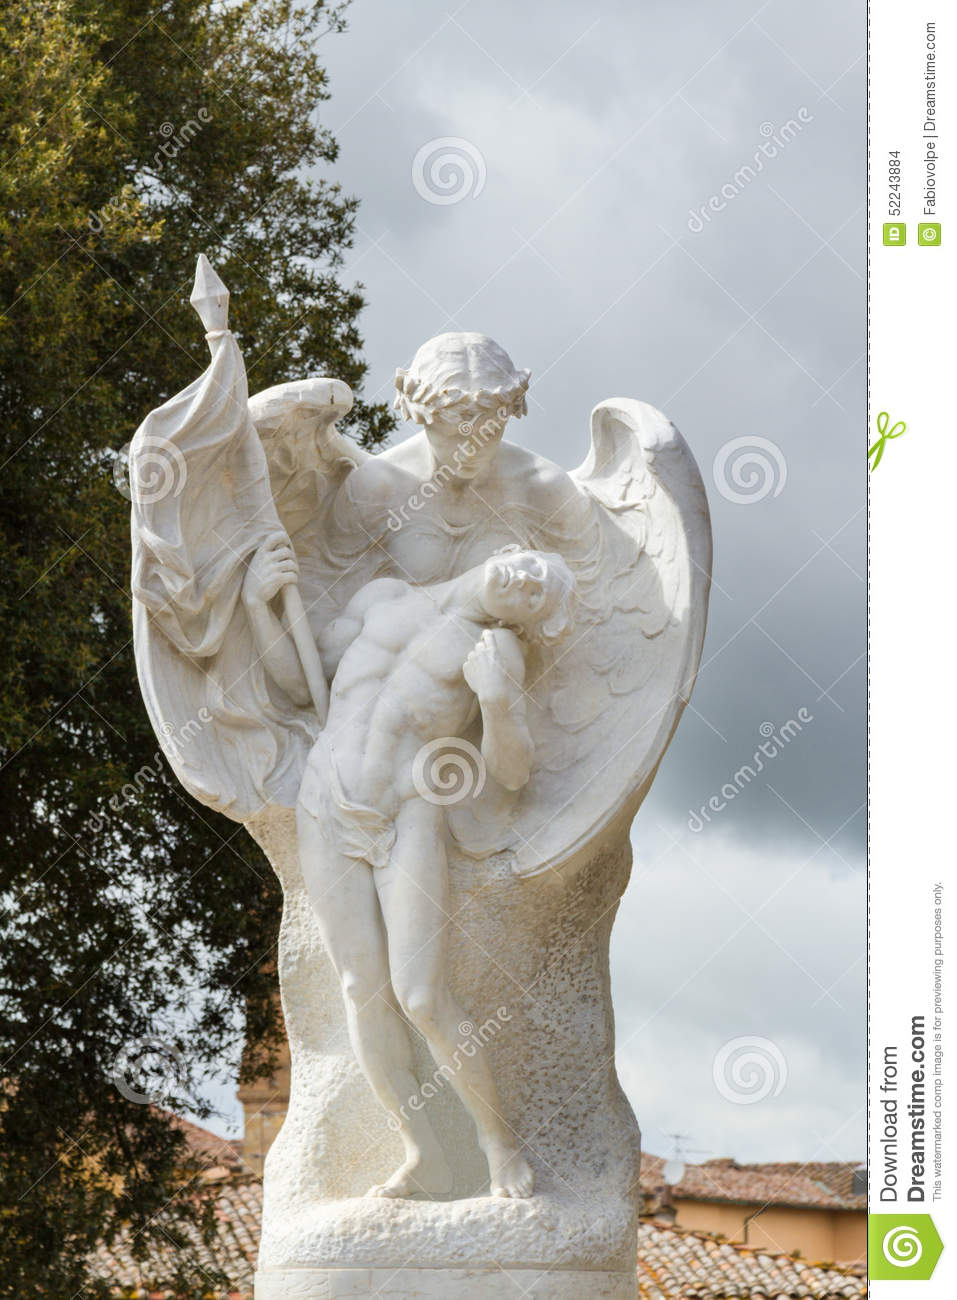 In The Arms Of An Angel Stock Photo Image Of Construction